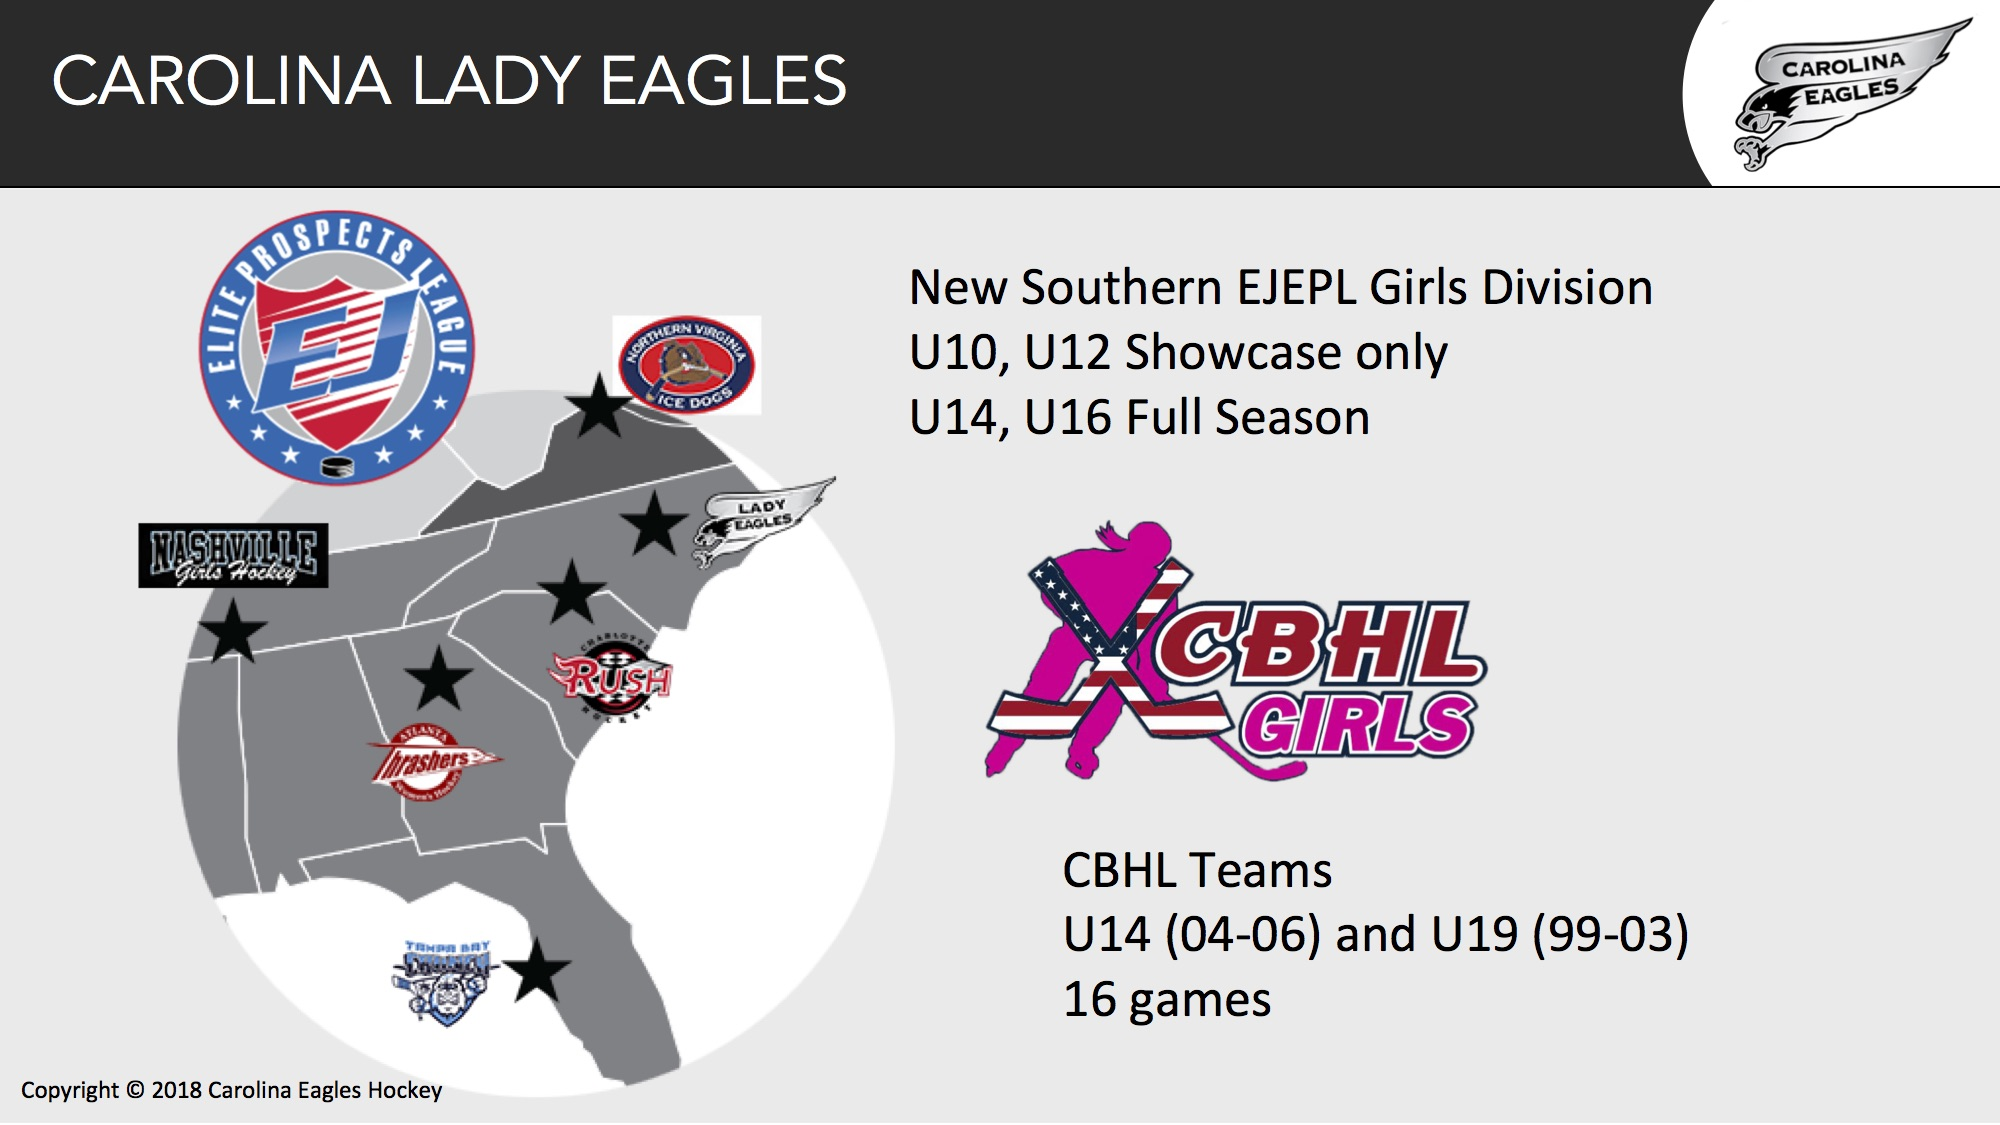 We play in leagues and strongly feel it is important to have something to play for. We are the only girls teams in our market that are in a league and have been since we were Lightning many years ago. We have helped create a new  EJEPL southern girls division  which is exclusive to the Eagles and Rush in the Carolinas.